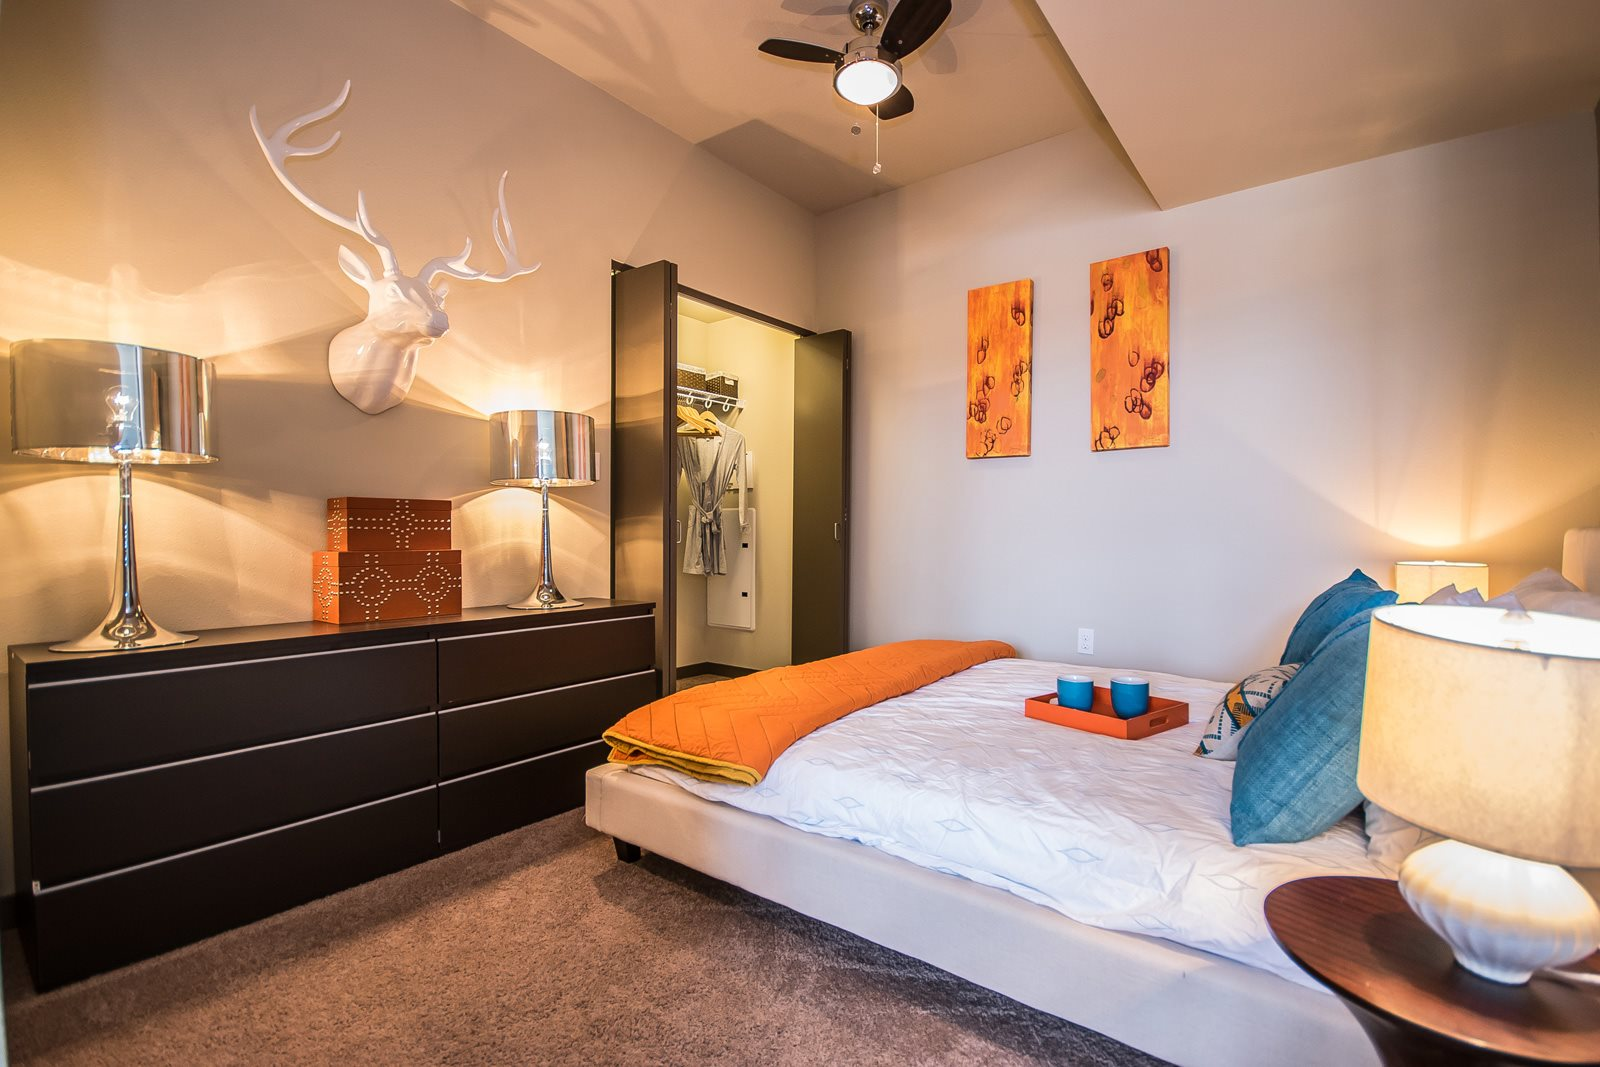 Spacious Bedrooms at Platform 14, Hillsboro, 97124